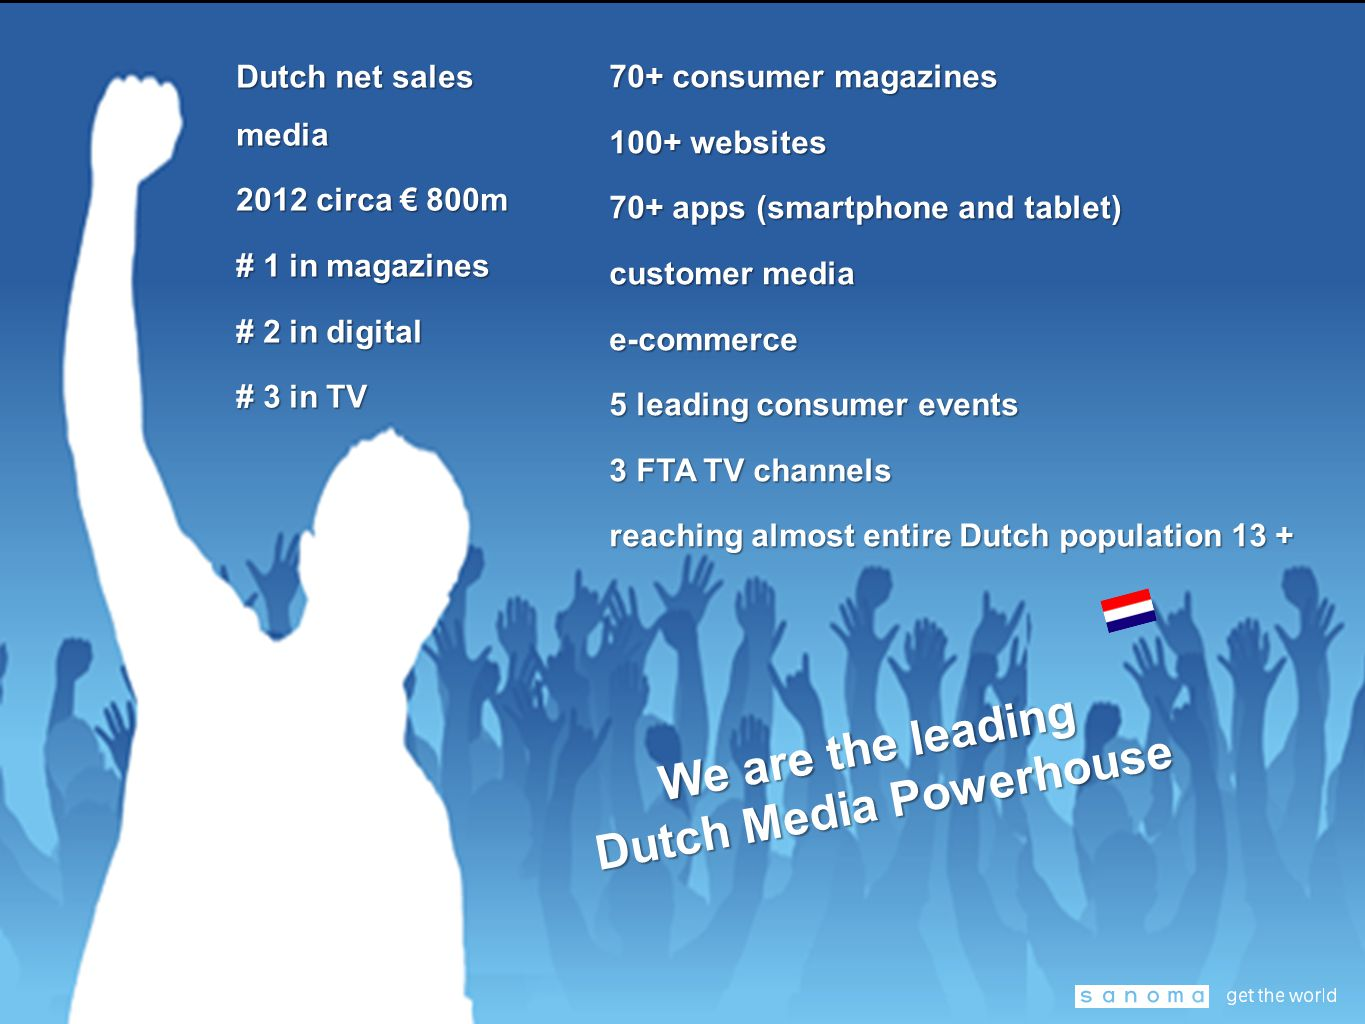 We are the leading Dutch Media Powerhouse 70+ consumer magazines 100+ websites 70+ apps (smartphone and tablet) customer media e-commerce 5 leading consumer events 3 FTA TV channels reaching almost entire Dutch population 13 + Dutch net sales media 2012 circa € 800m # 1 in magazines # 2 in digital # 3 in TV